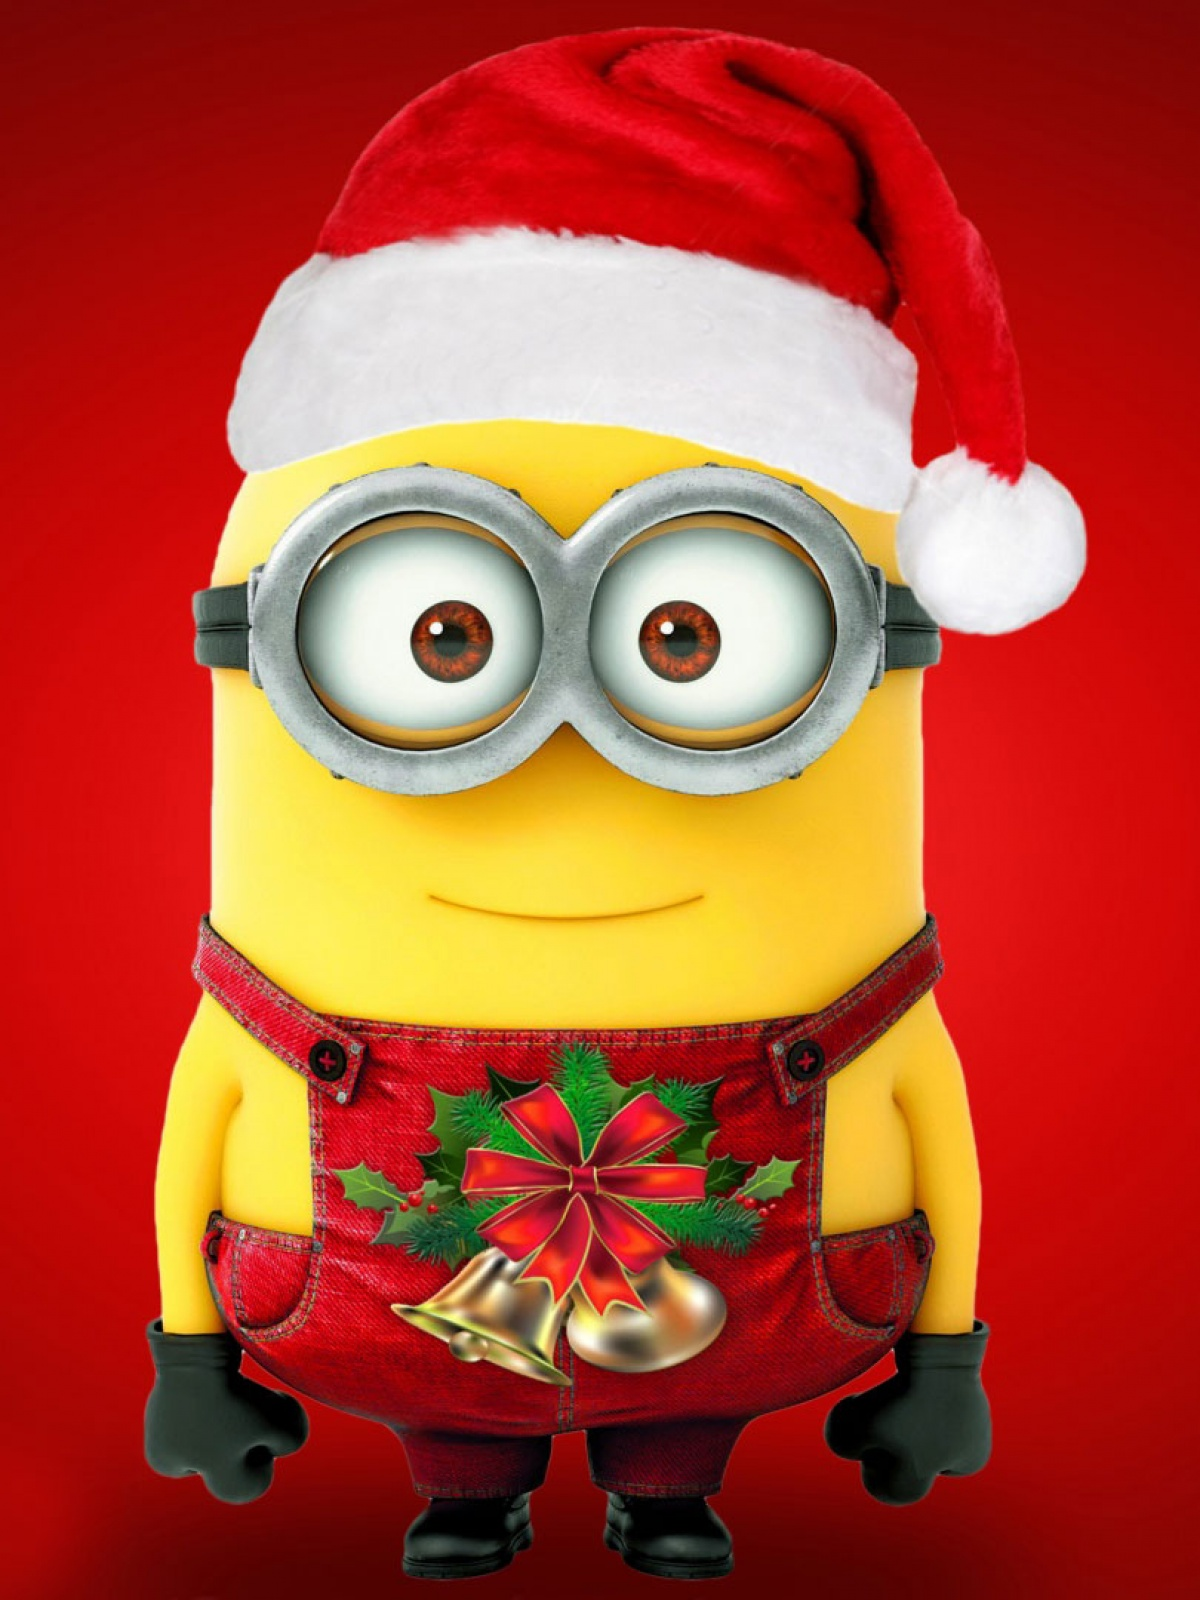 merry christmas minions mobile wallpaper - mobiles wall